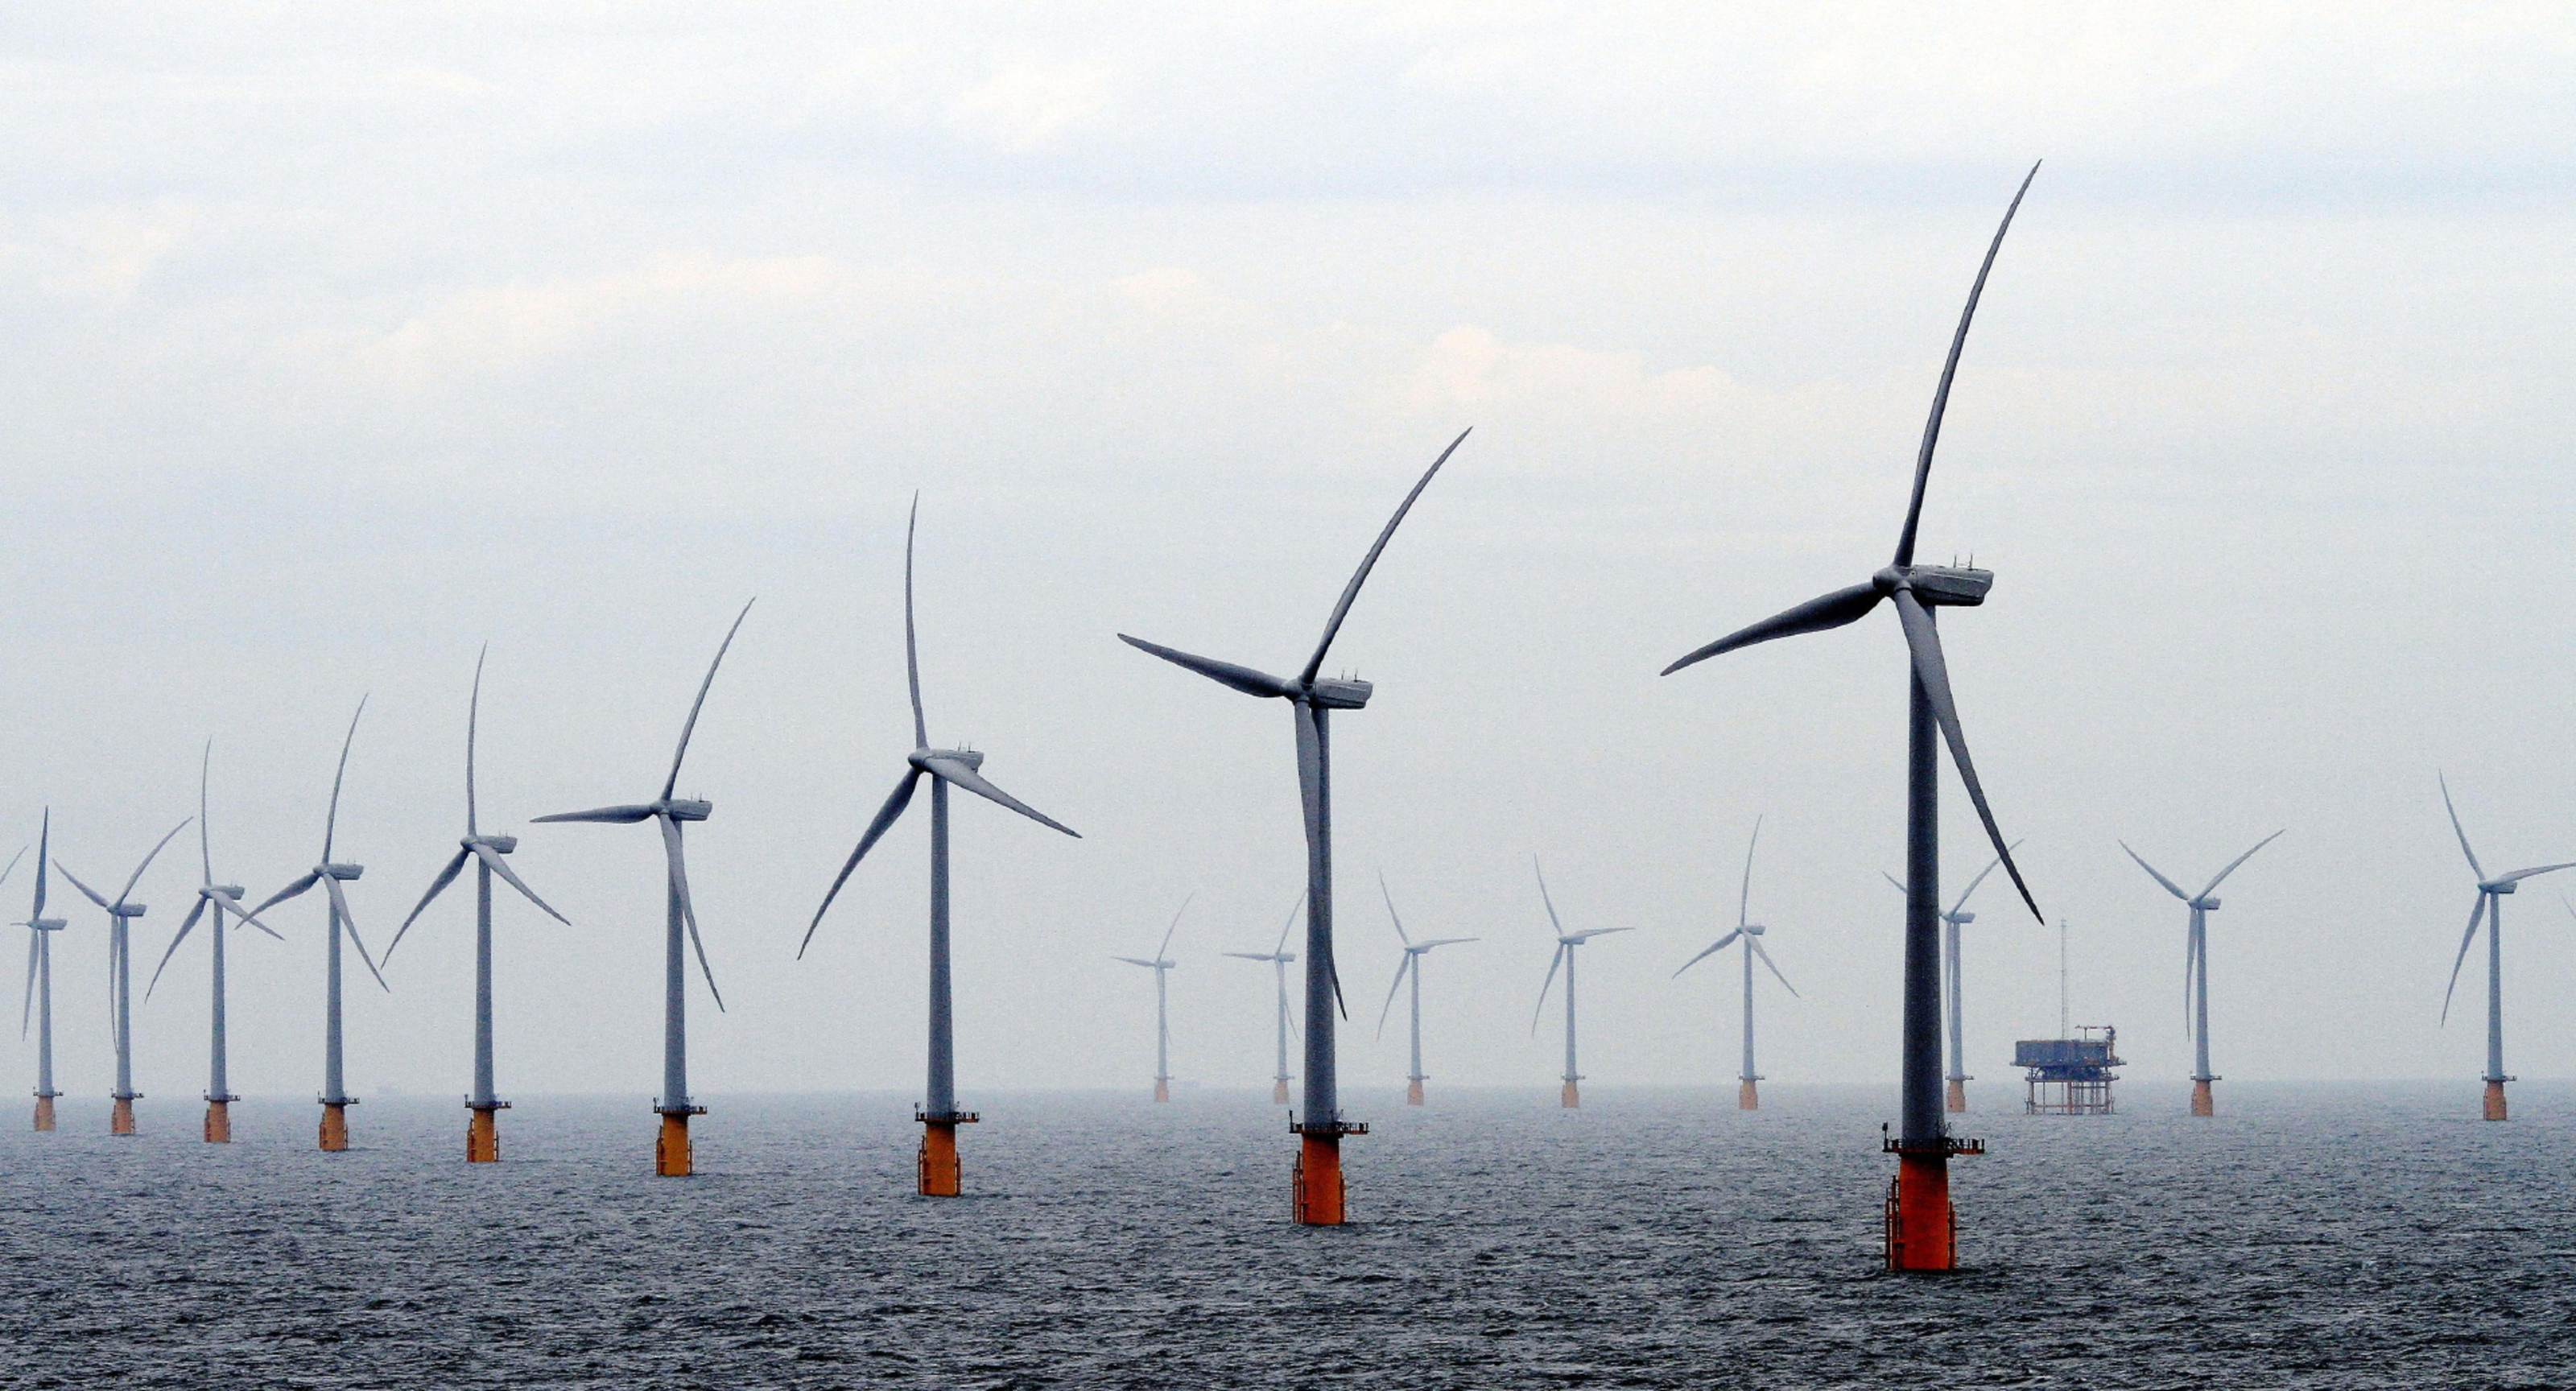 RSPB has mounted a successful legal challenge against the Neart na Gaoithe, Seagreen and Inchcape windfarm projects.